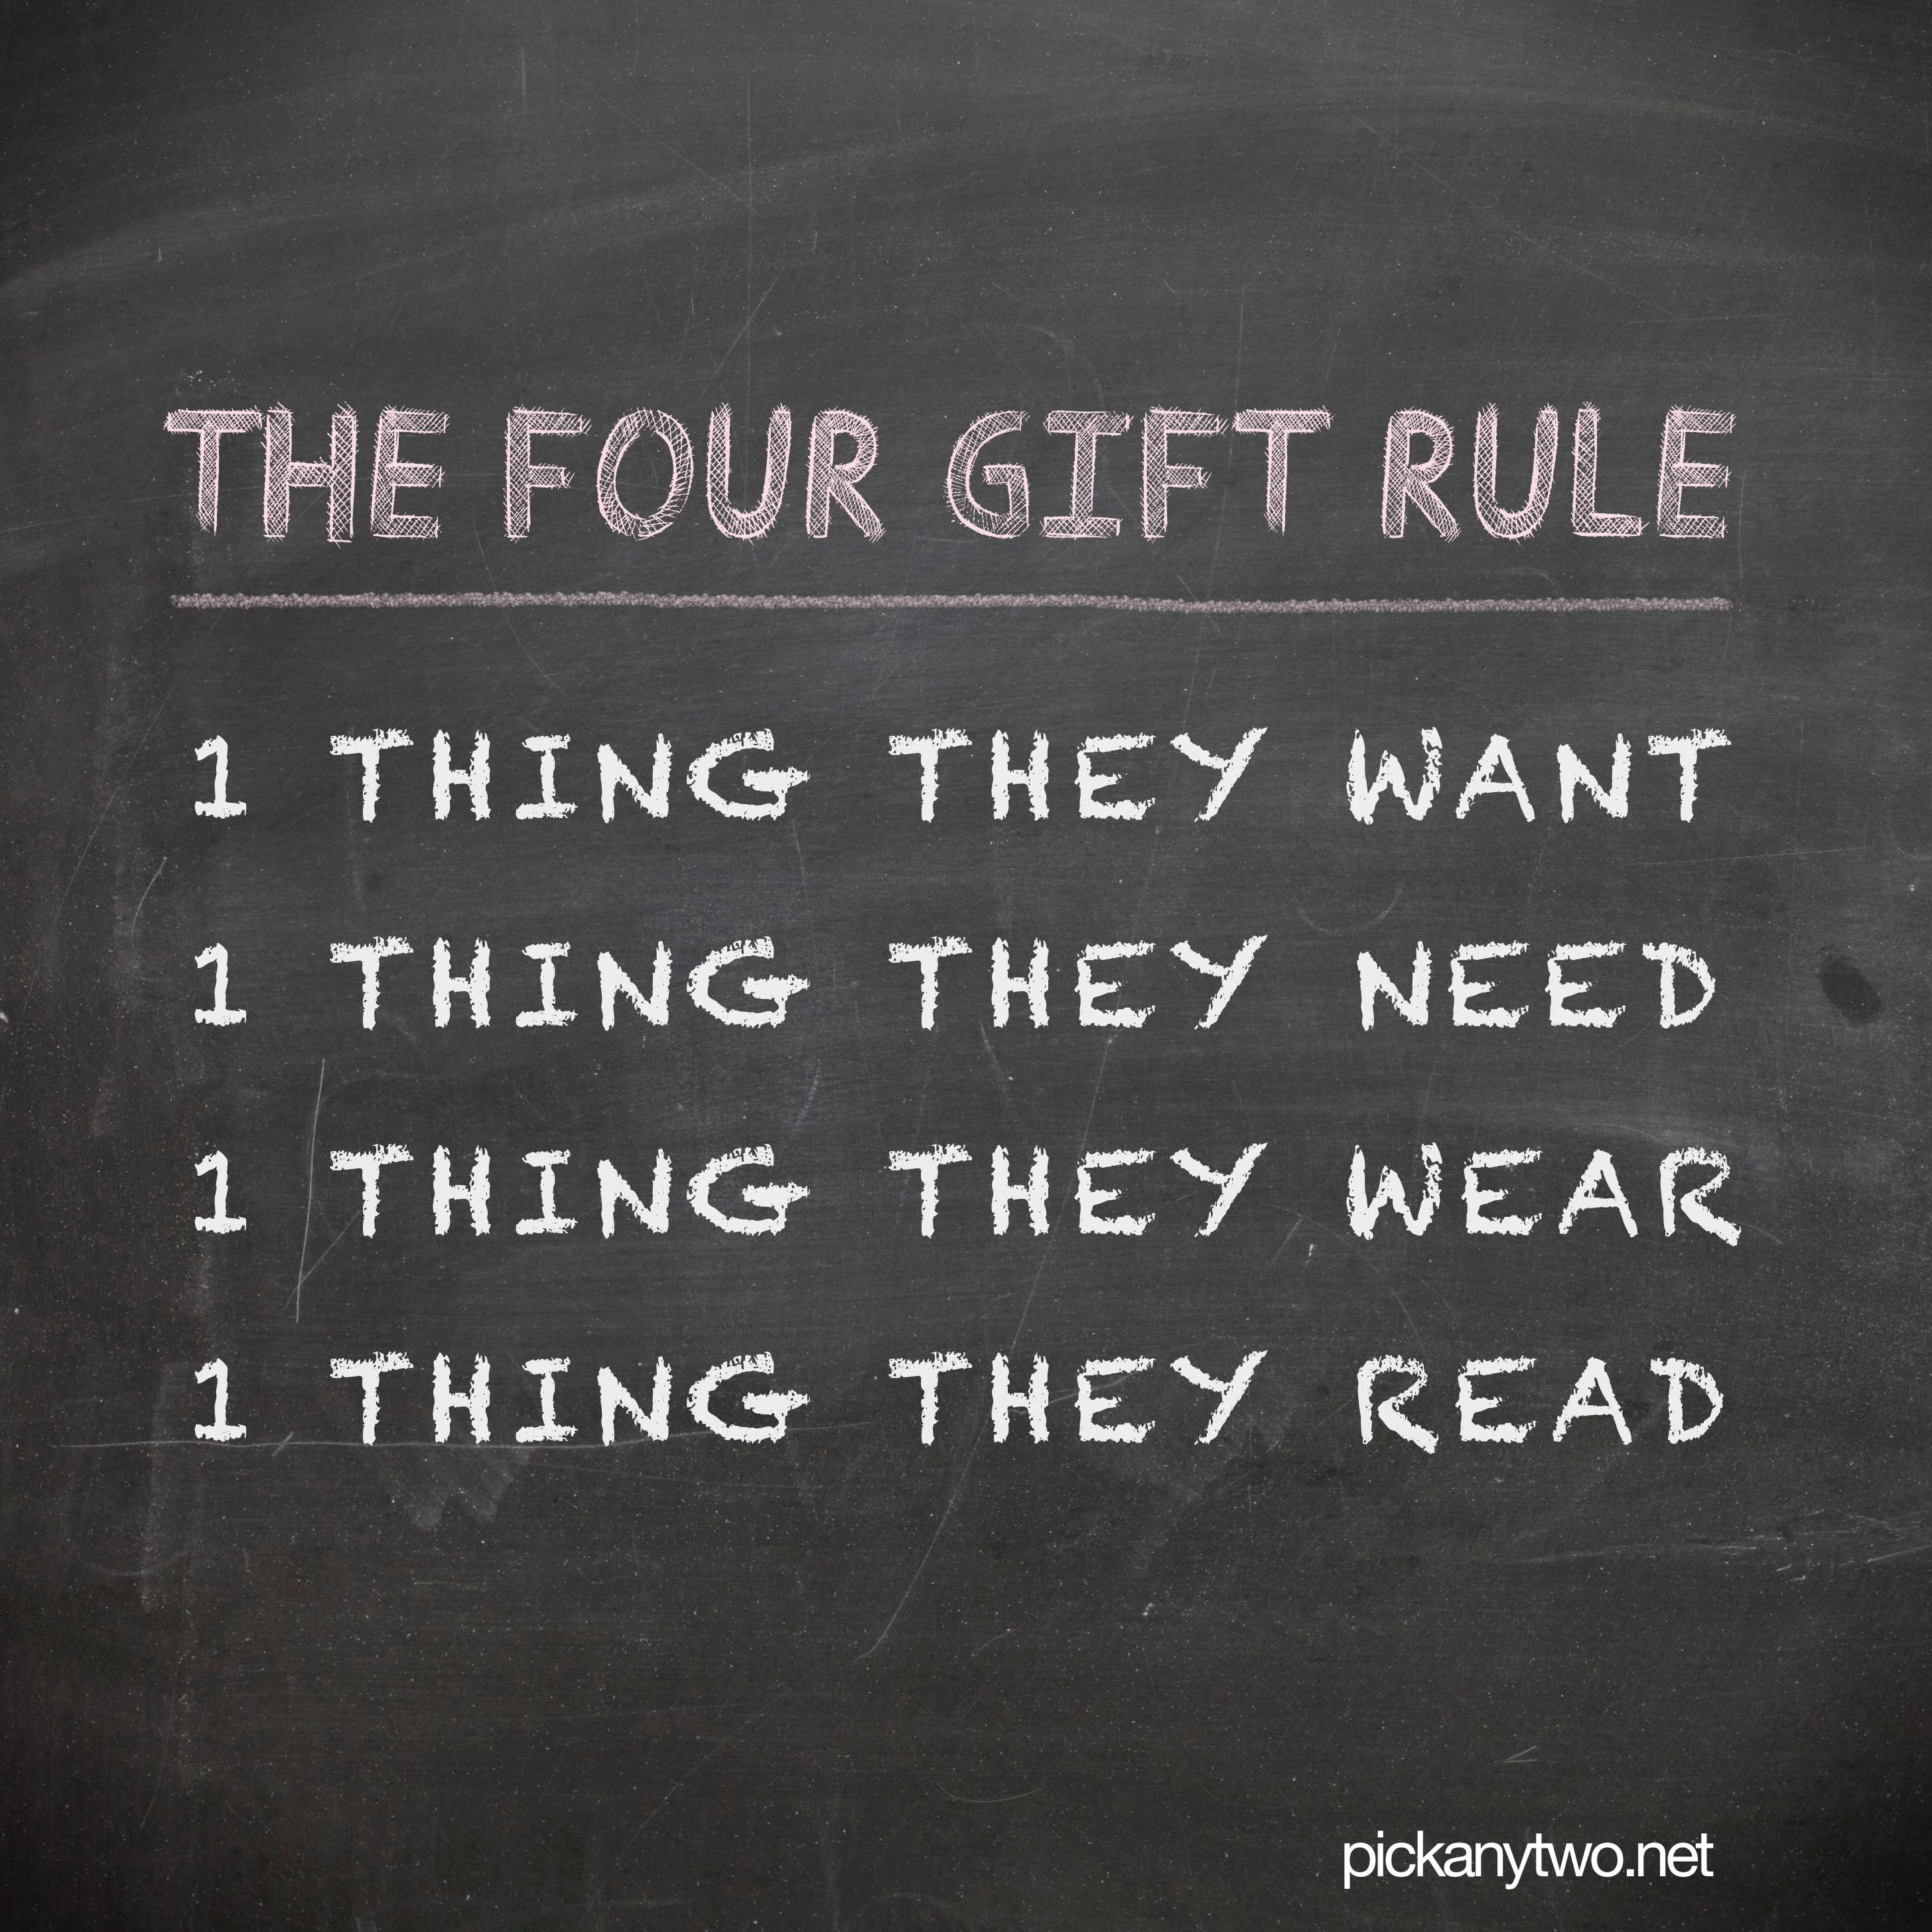 The Four Gift Rule - Pick Any Two